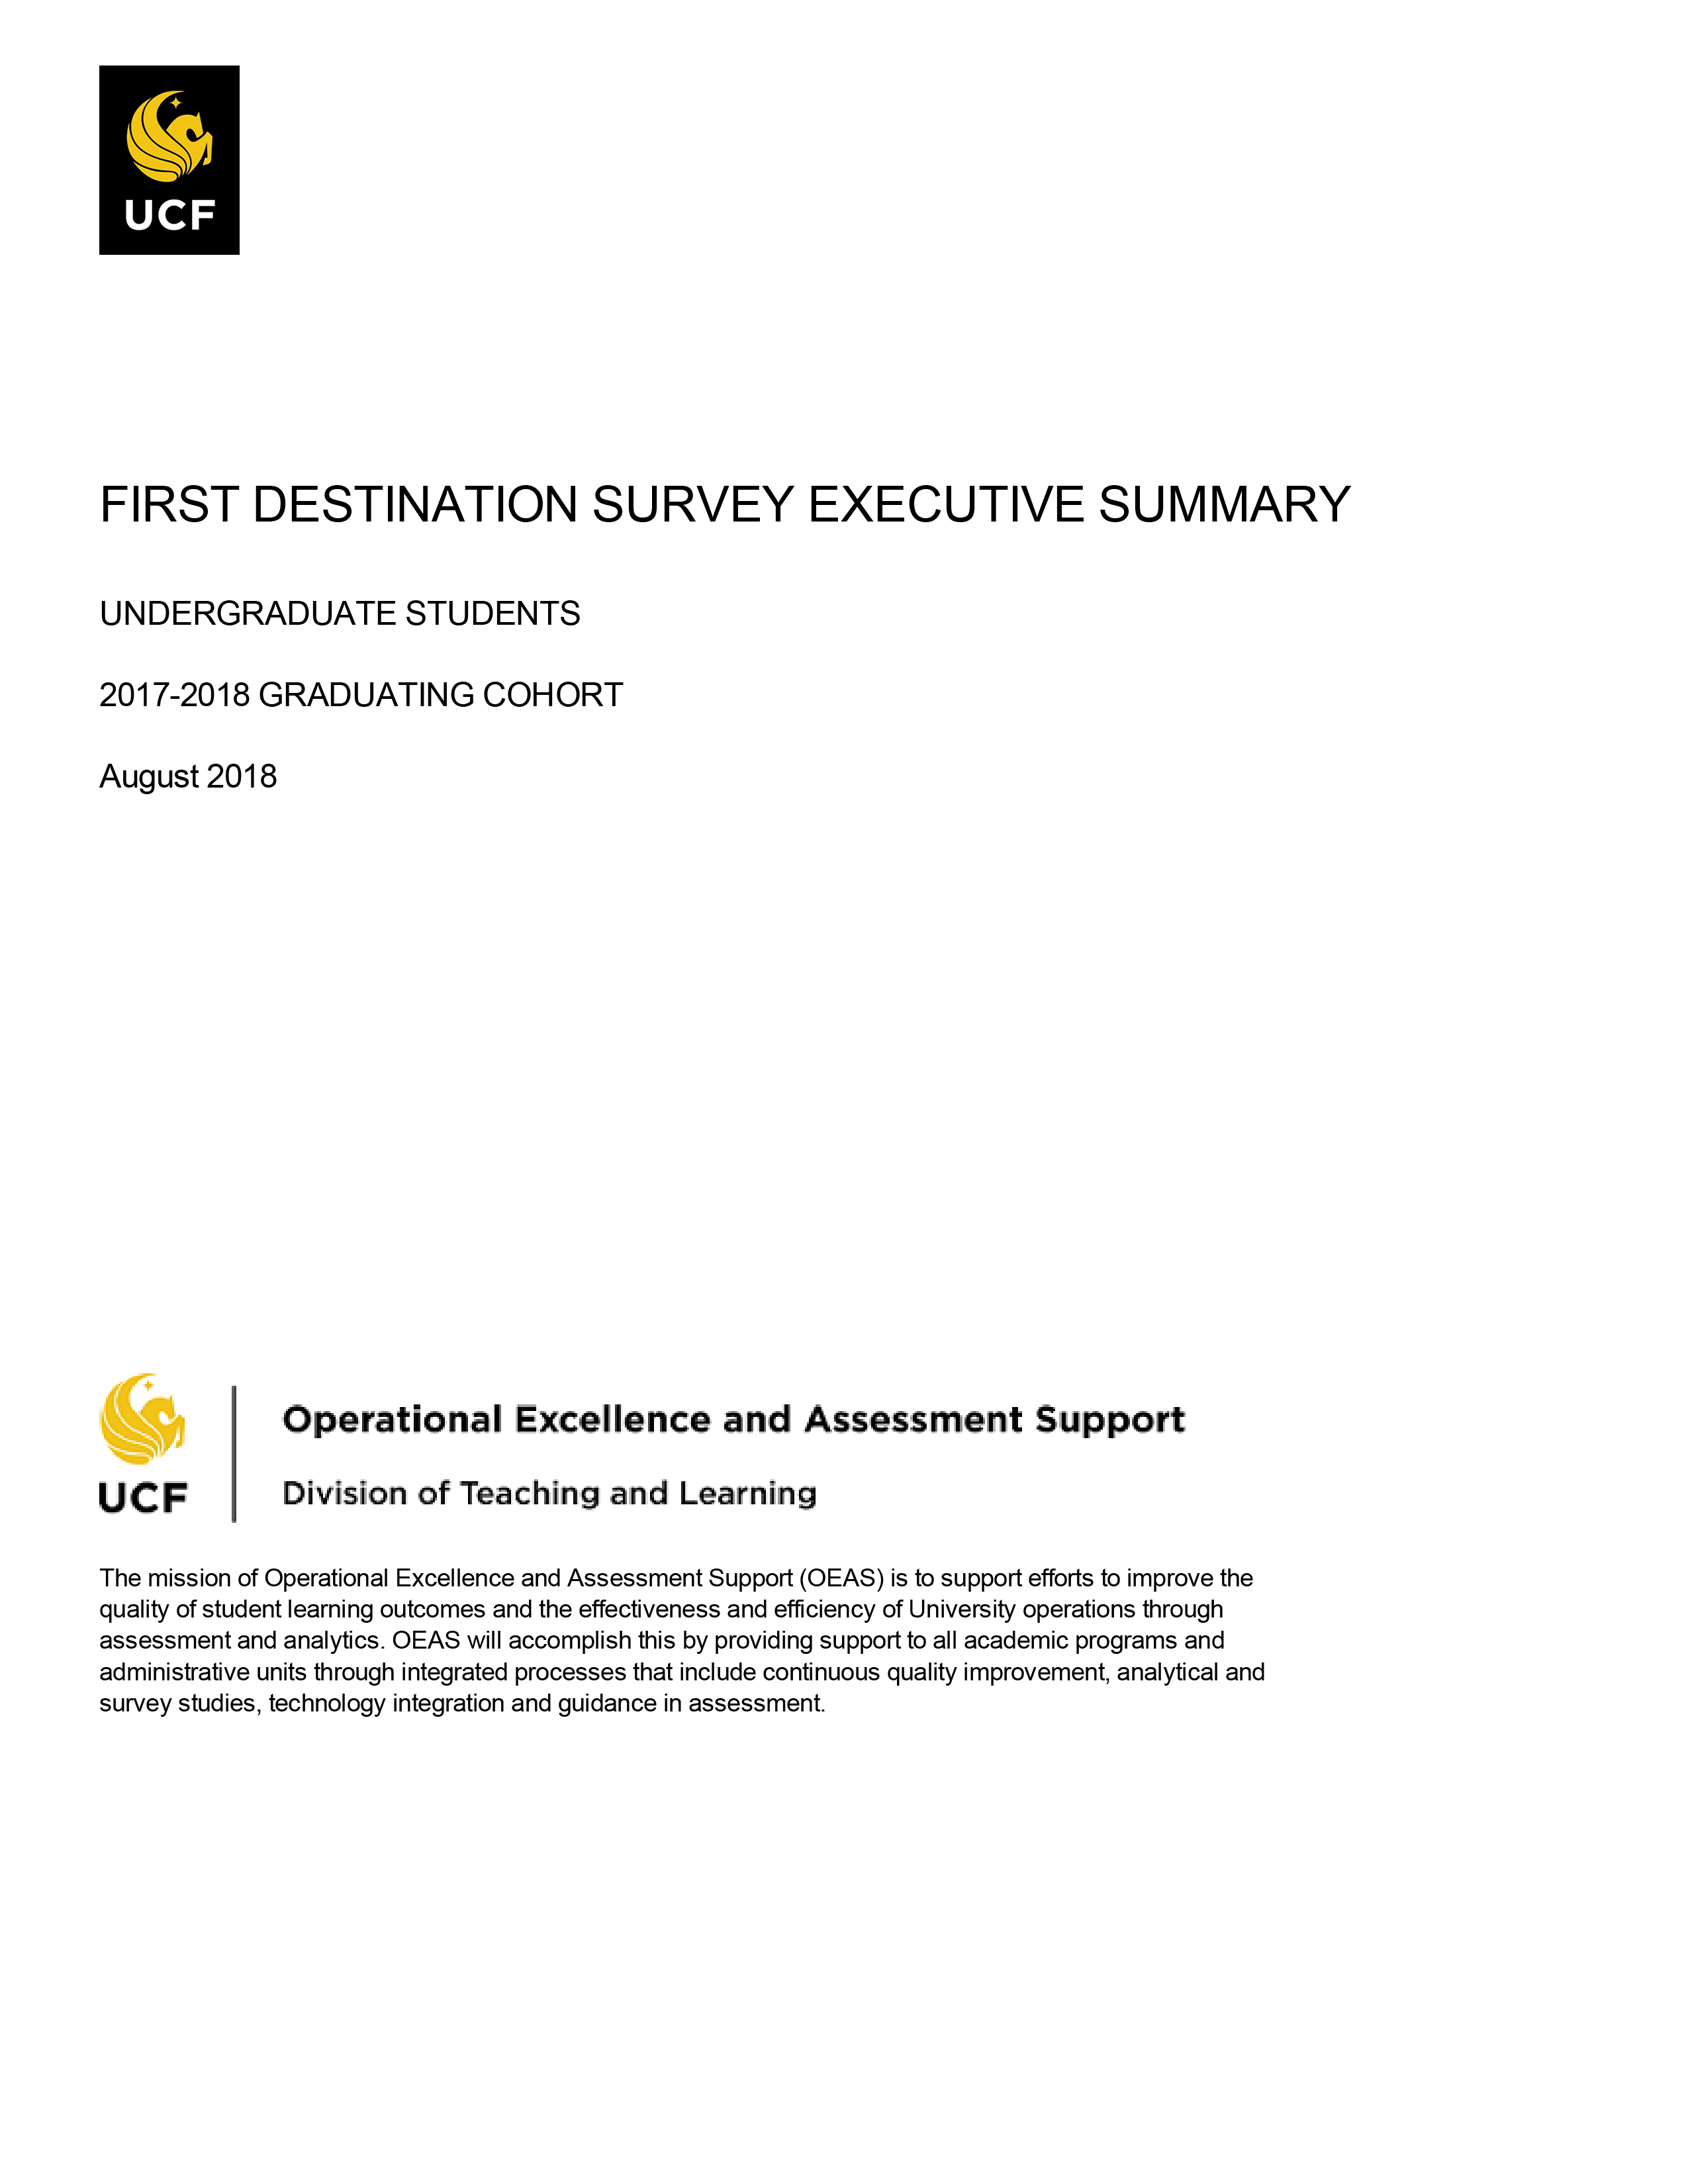 2015-16 First Destination Survey Executive Summary